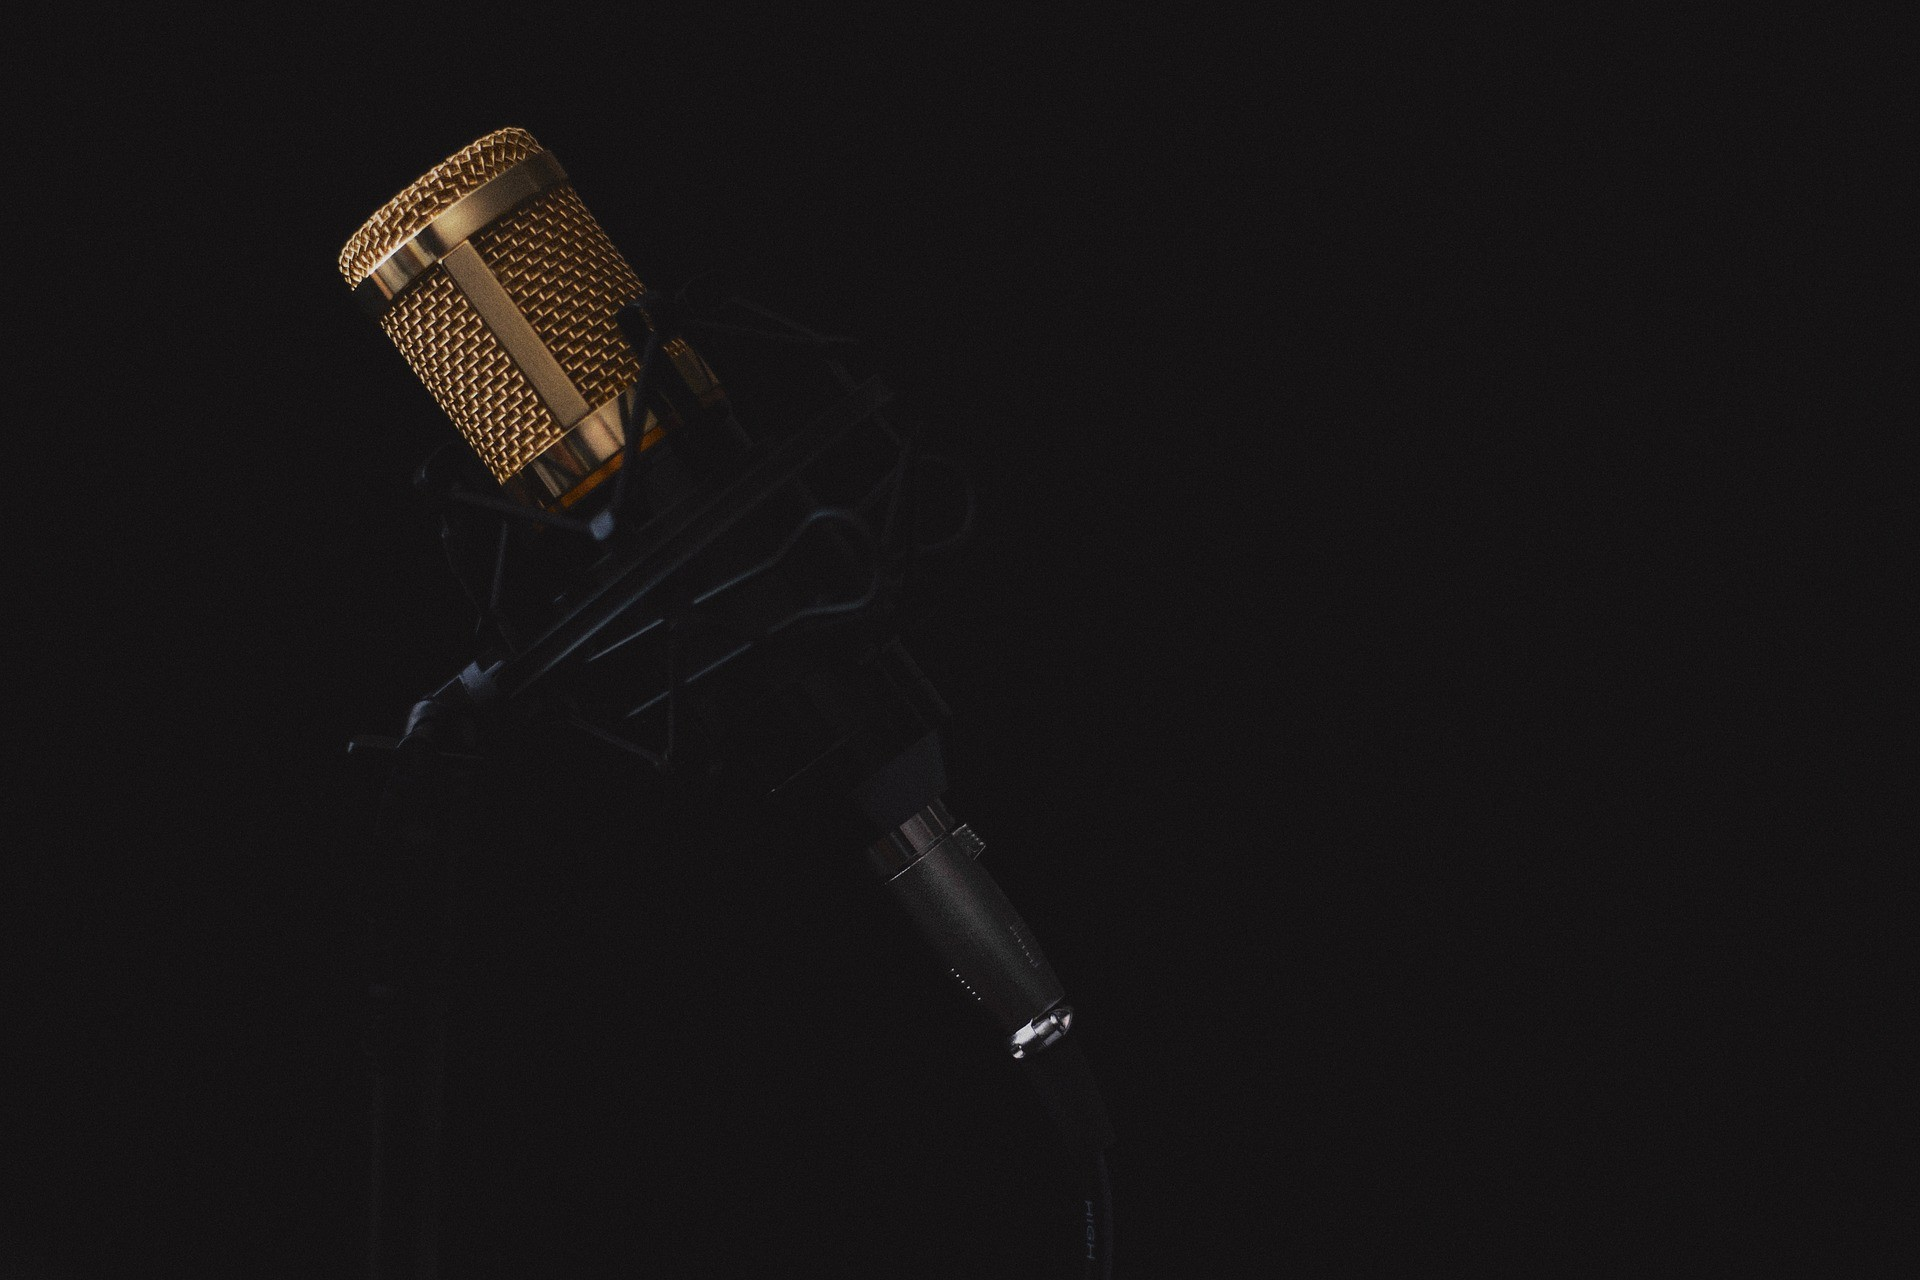 microphone-2130806_1920